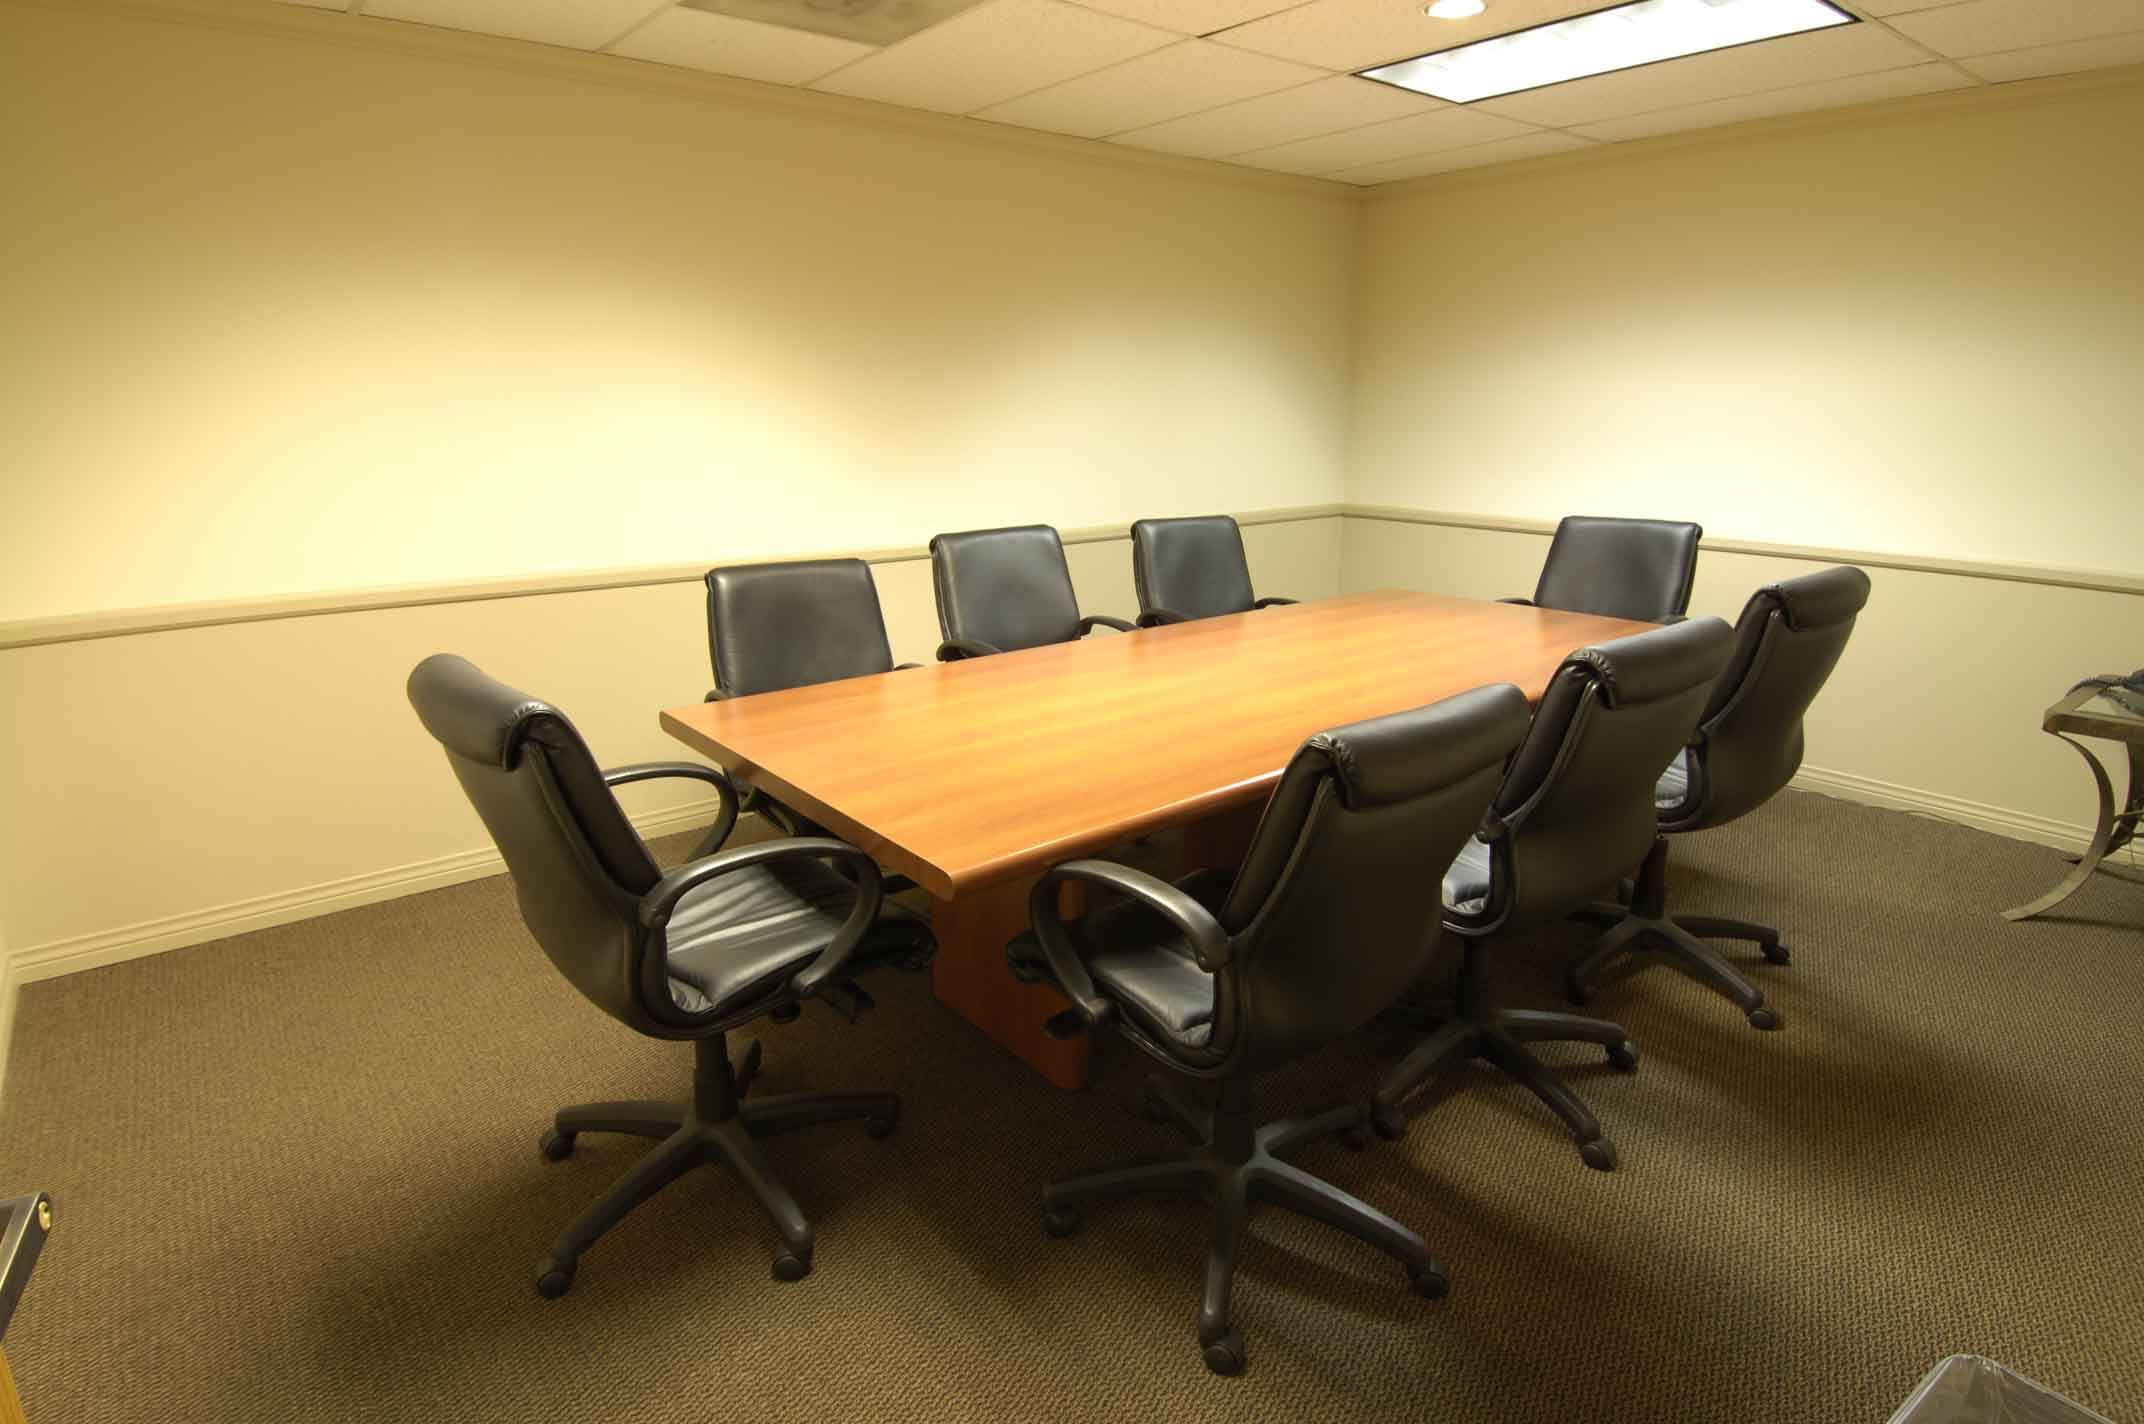 Interior Designs Simple Office Meeting Room Decor With